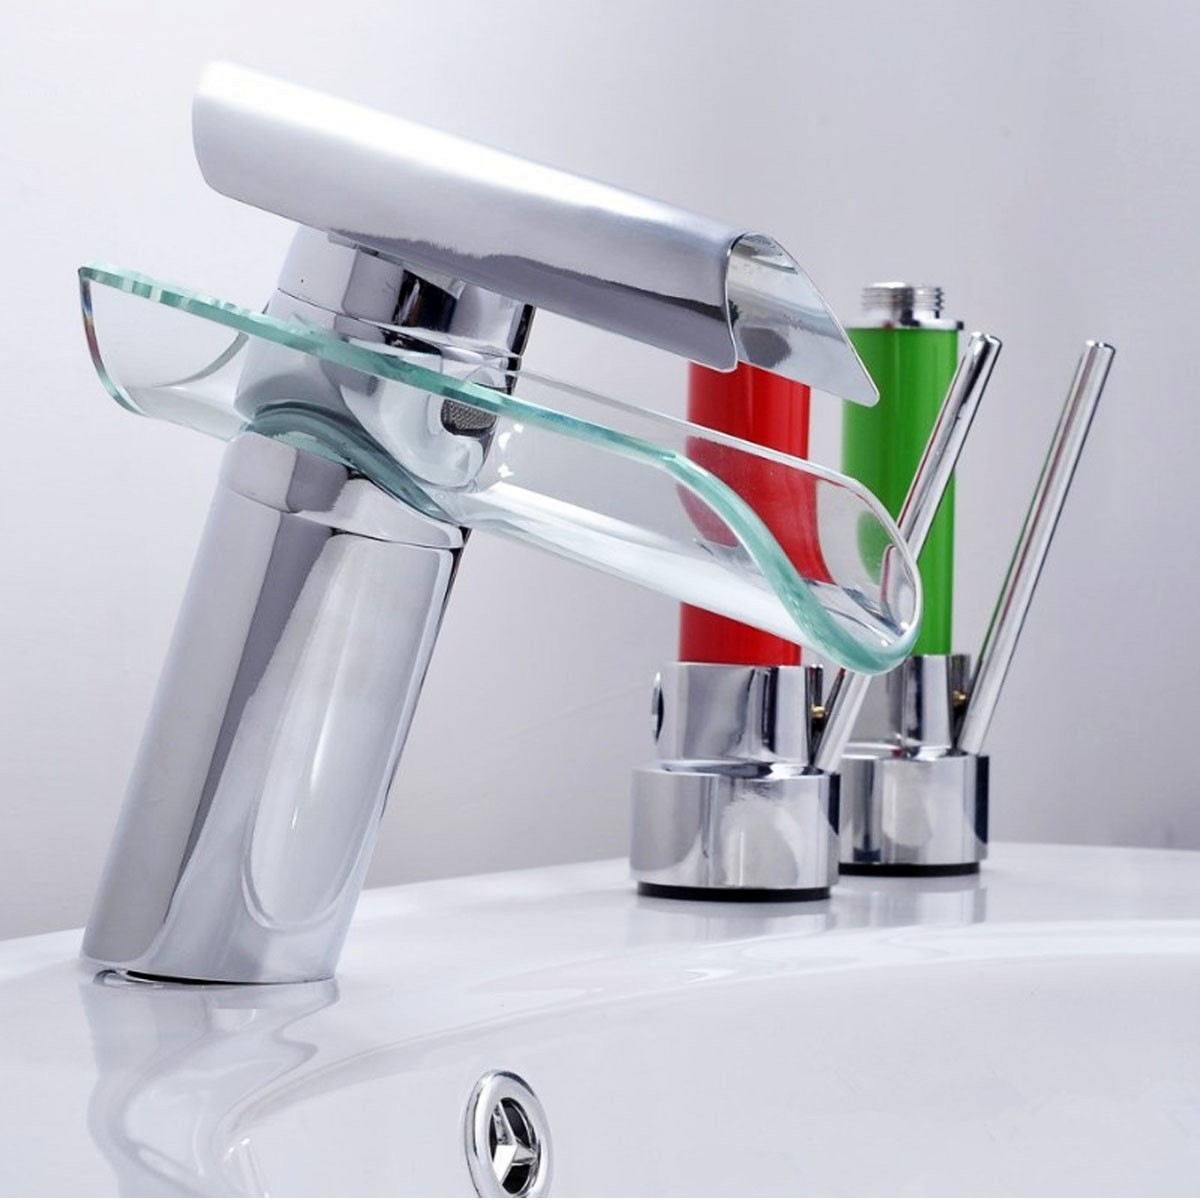 Bathroom Faucet Advanced Modern Glass Waterfall contemporary Chrome Brass Bathroom basin Faucets sink Mixer waterfall Tap контейнер dunya plastik корабль цвет прозрачный синий 9 л